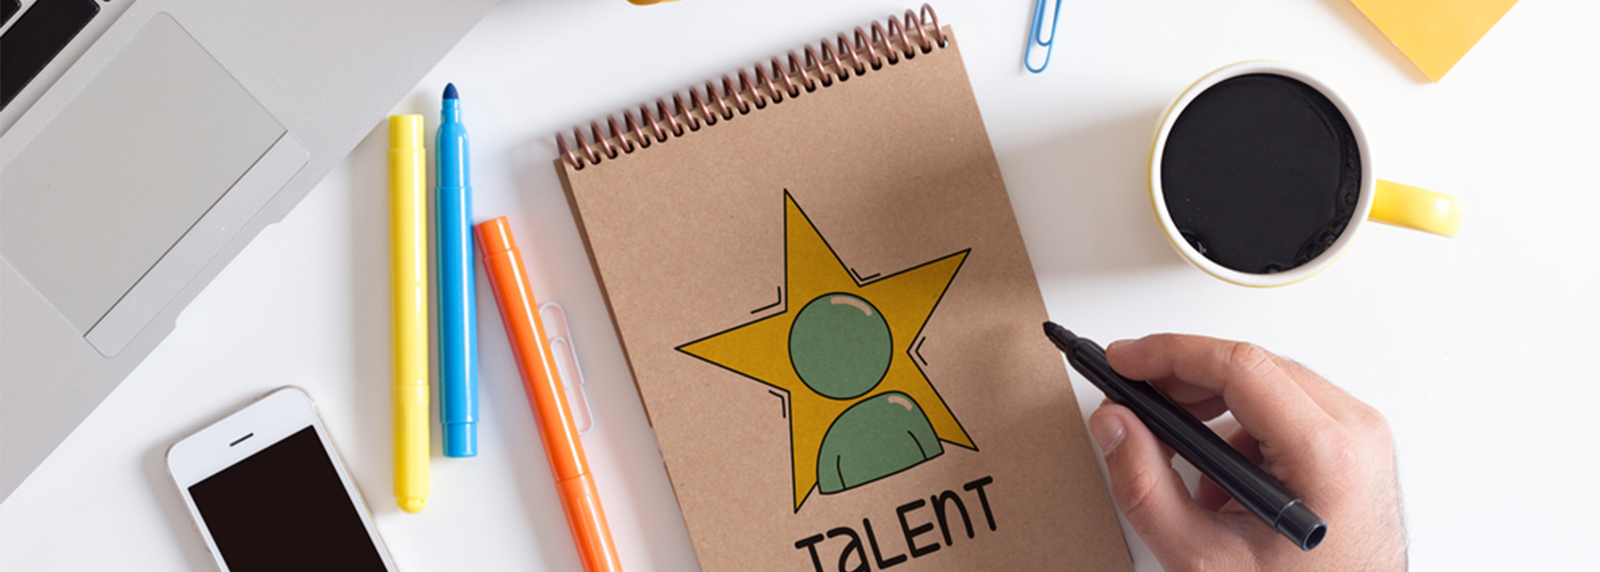 Personal Talent and Skill Management